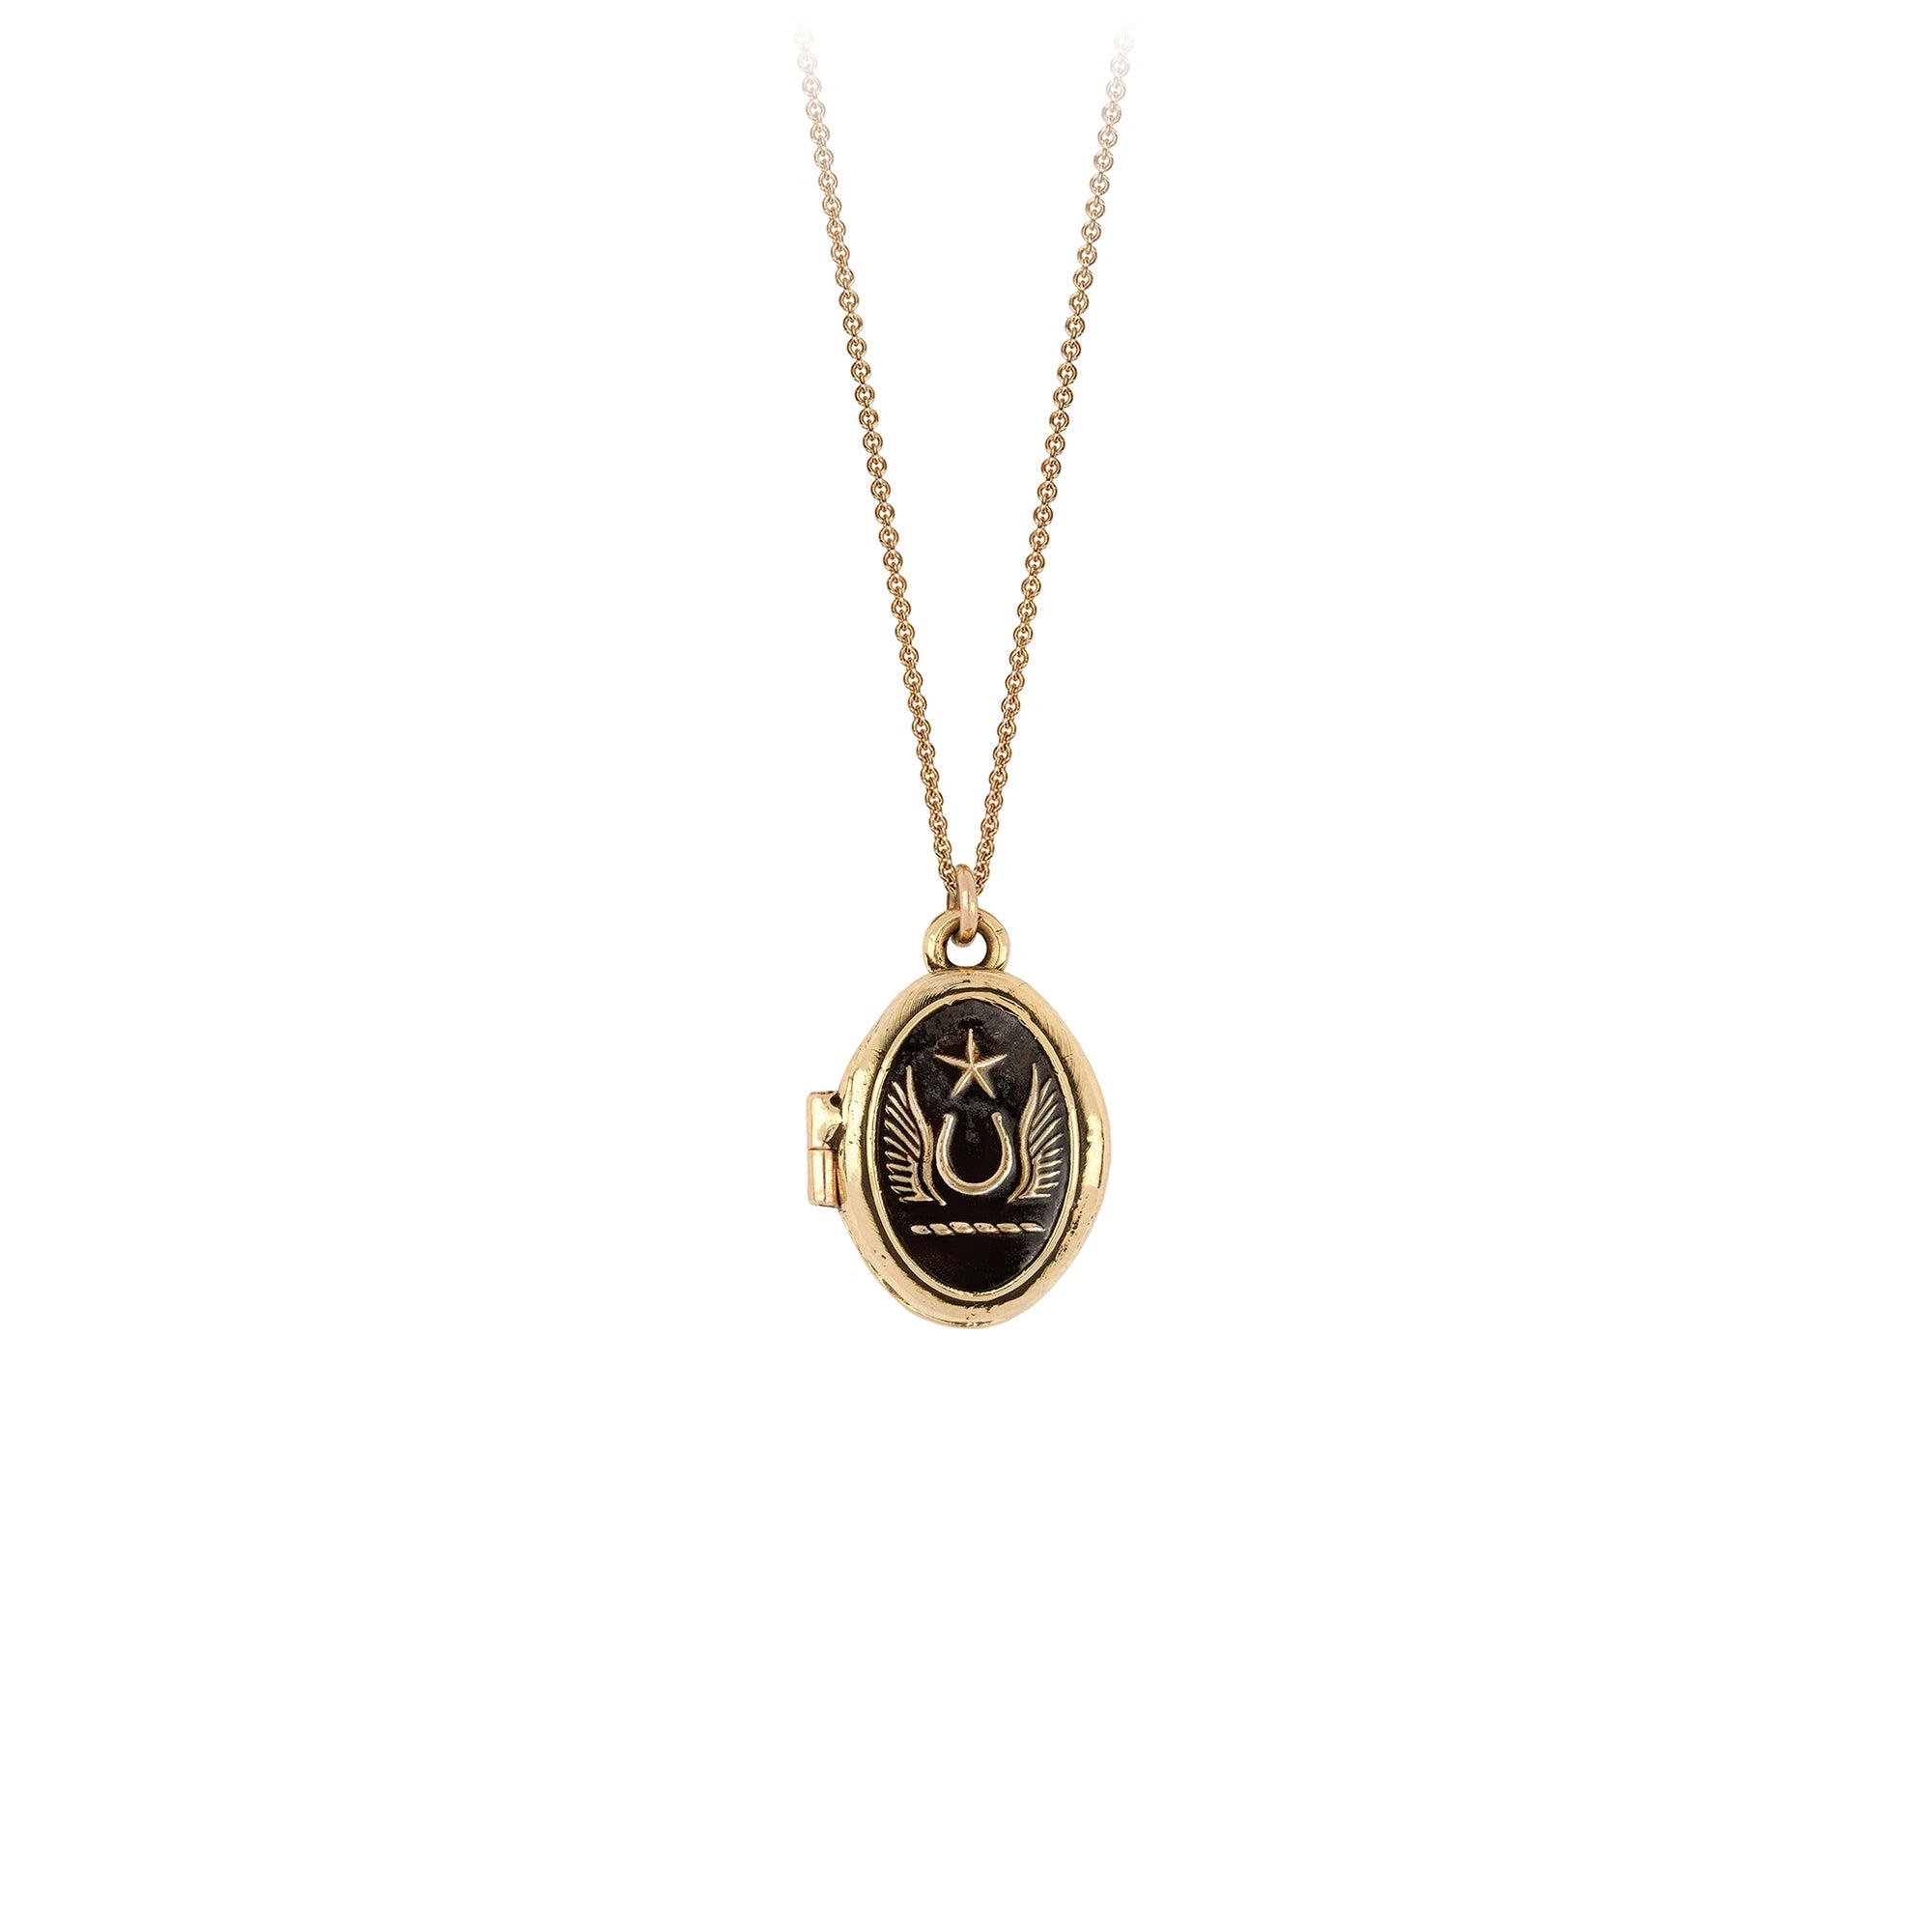 Pyrrha 14K Gold Luck and Protection Locket Necklace